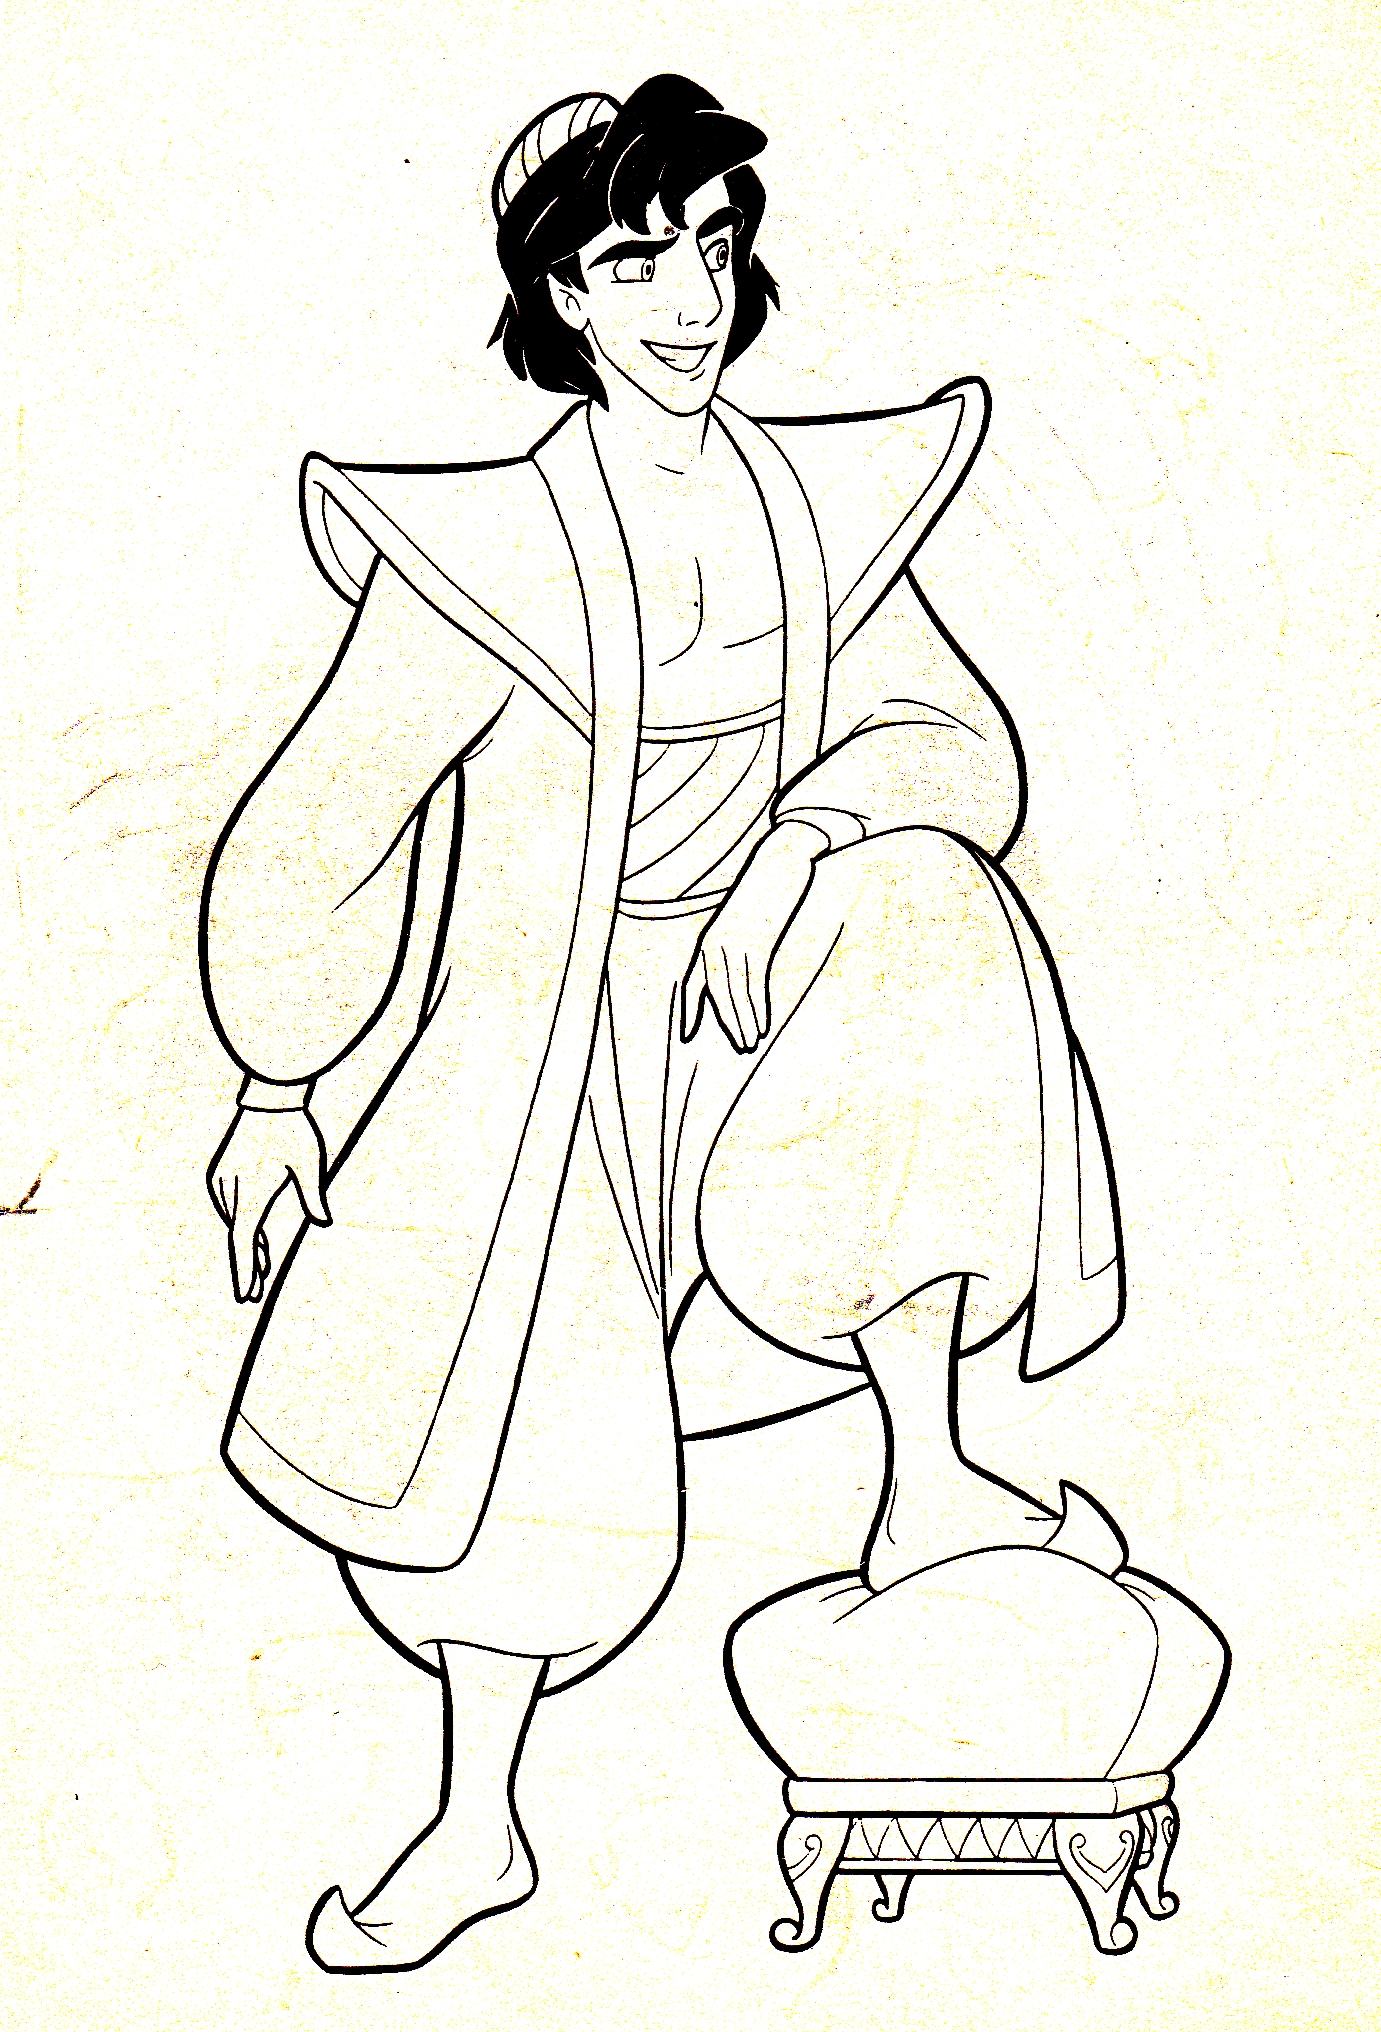 disney prince phillip coloring pages - photo#7